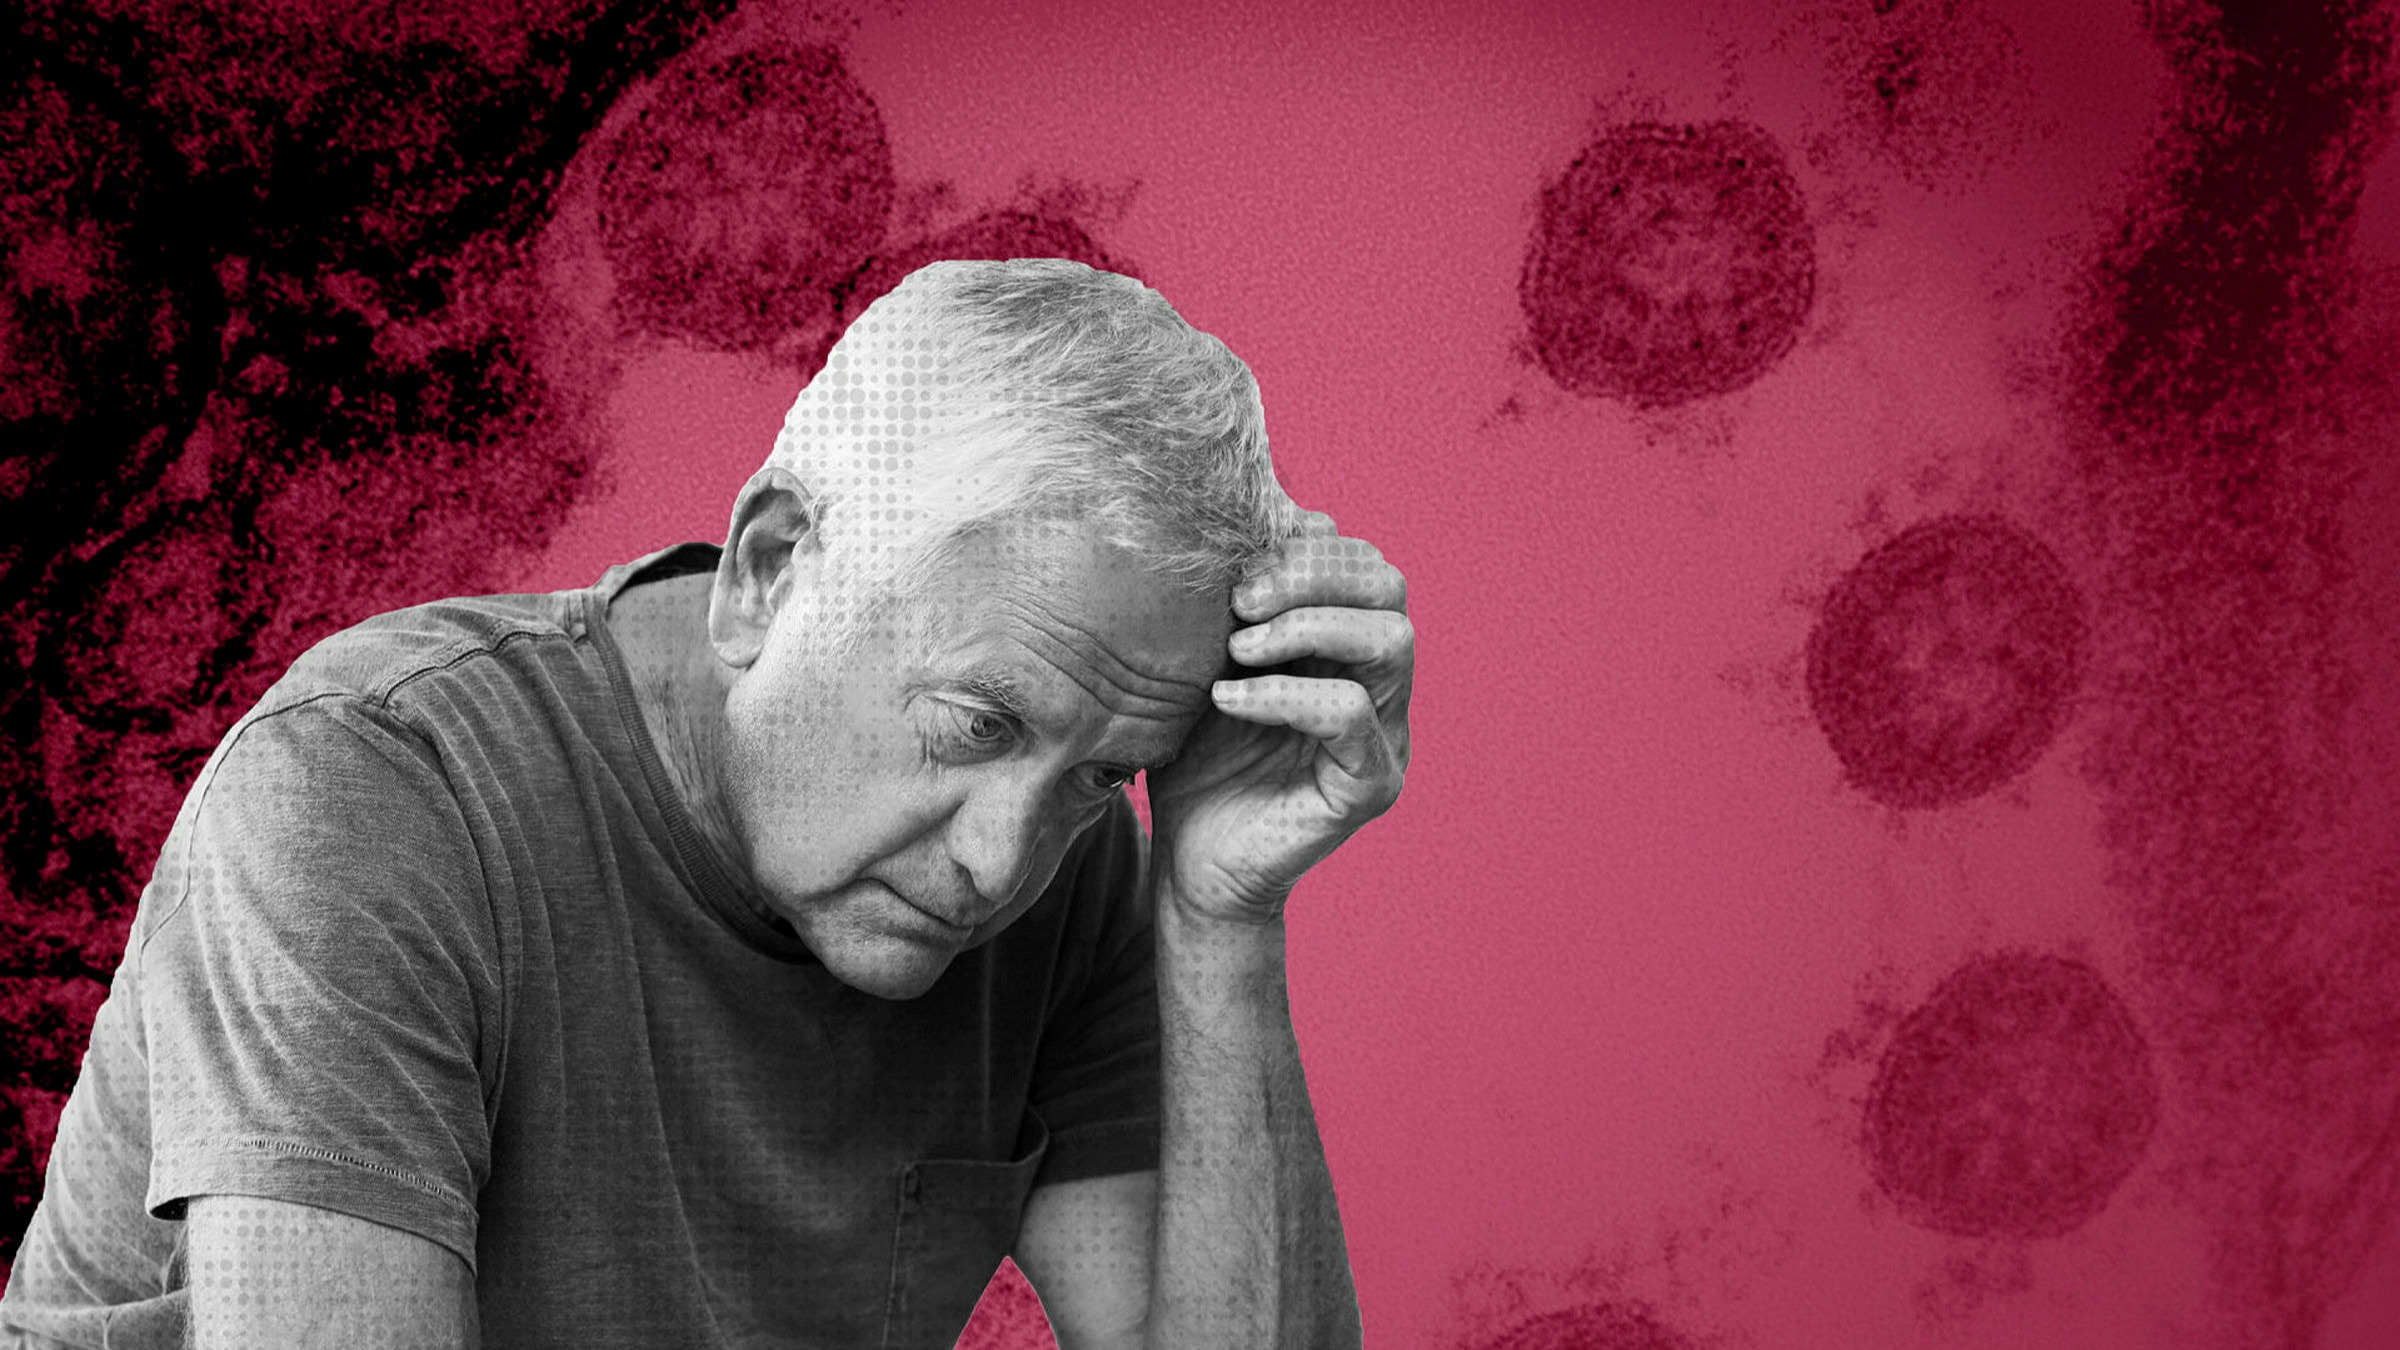 Fatigue Plagues Thousands Suffering Post Coronavirus Symptoms Free To Read Financial Times